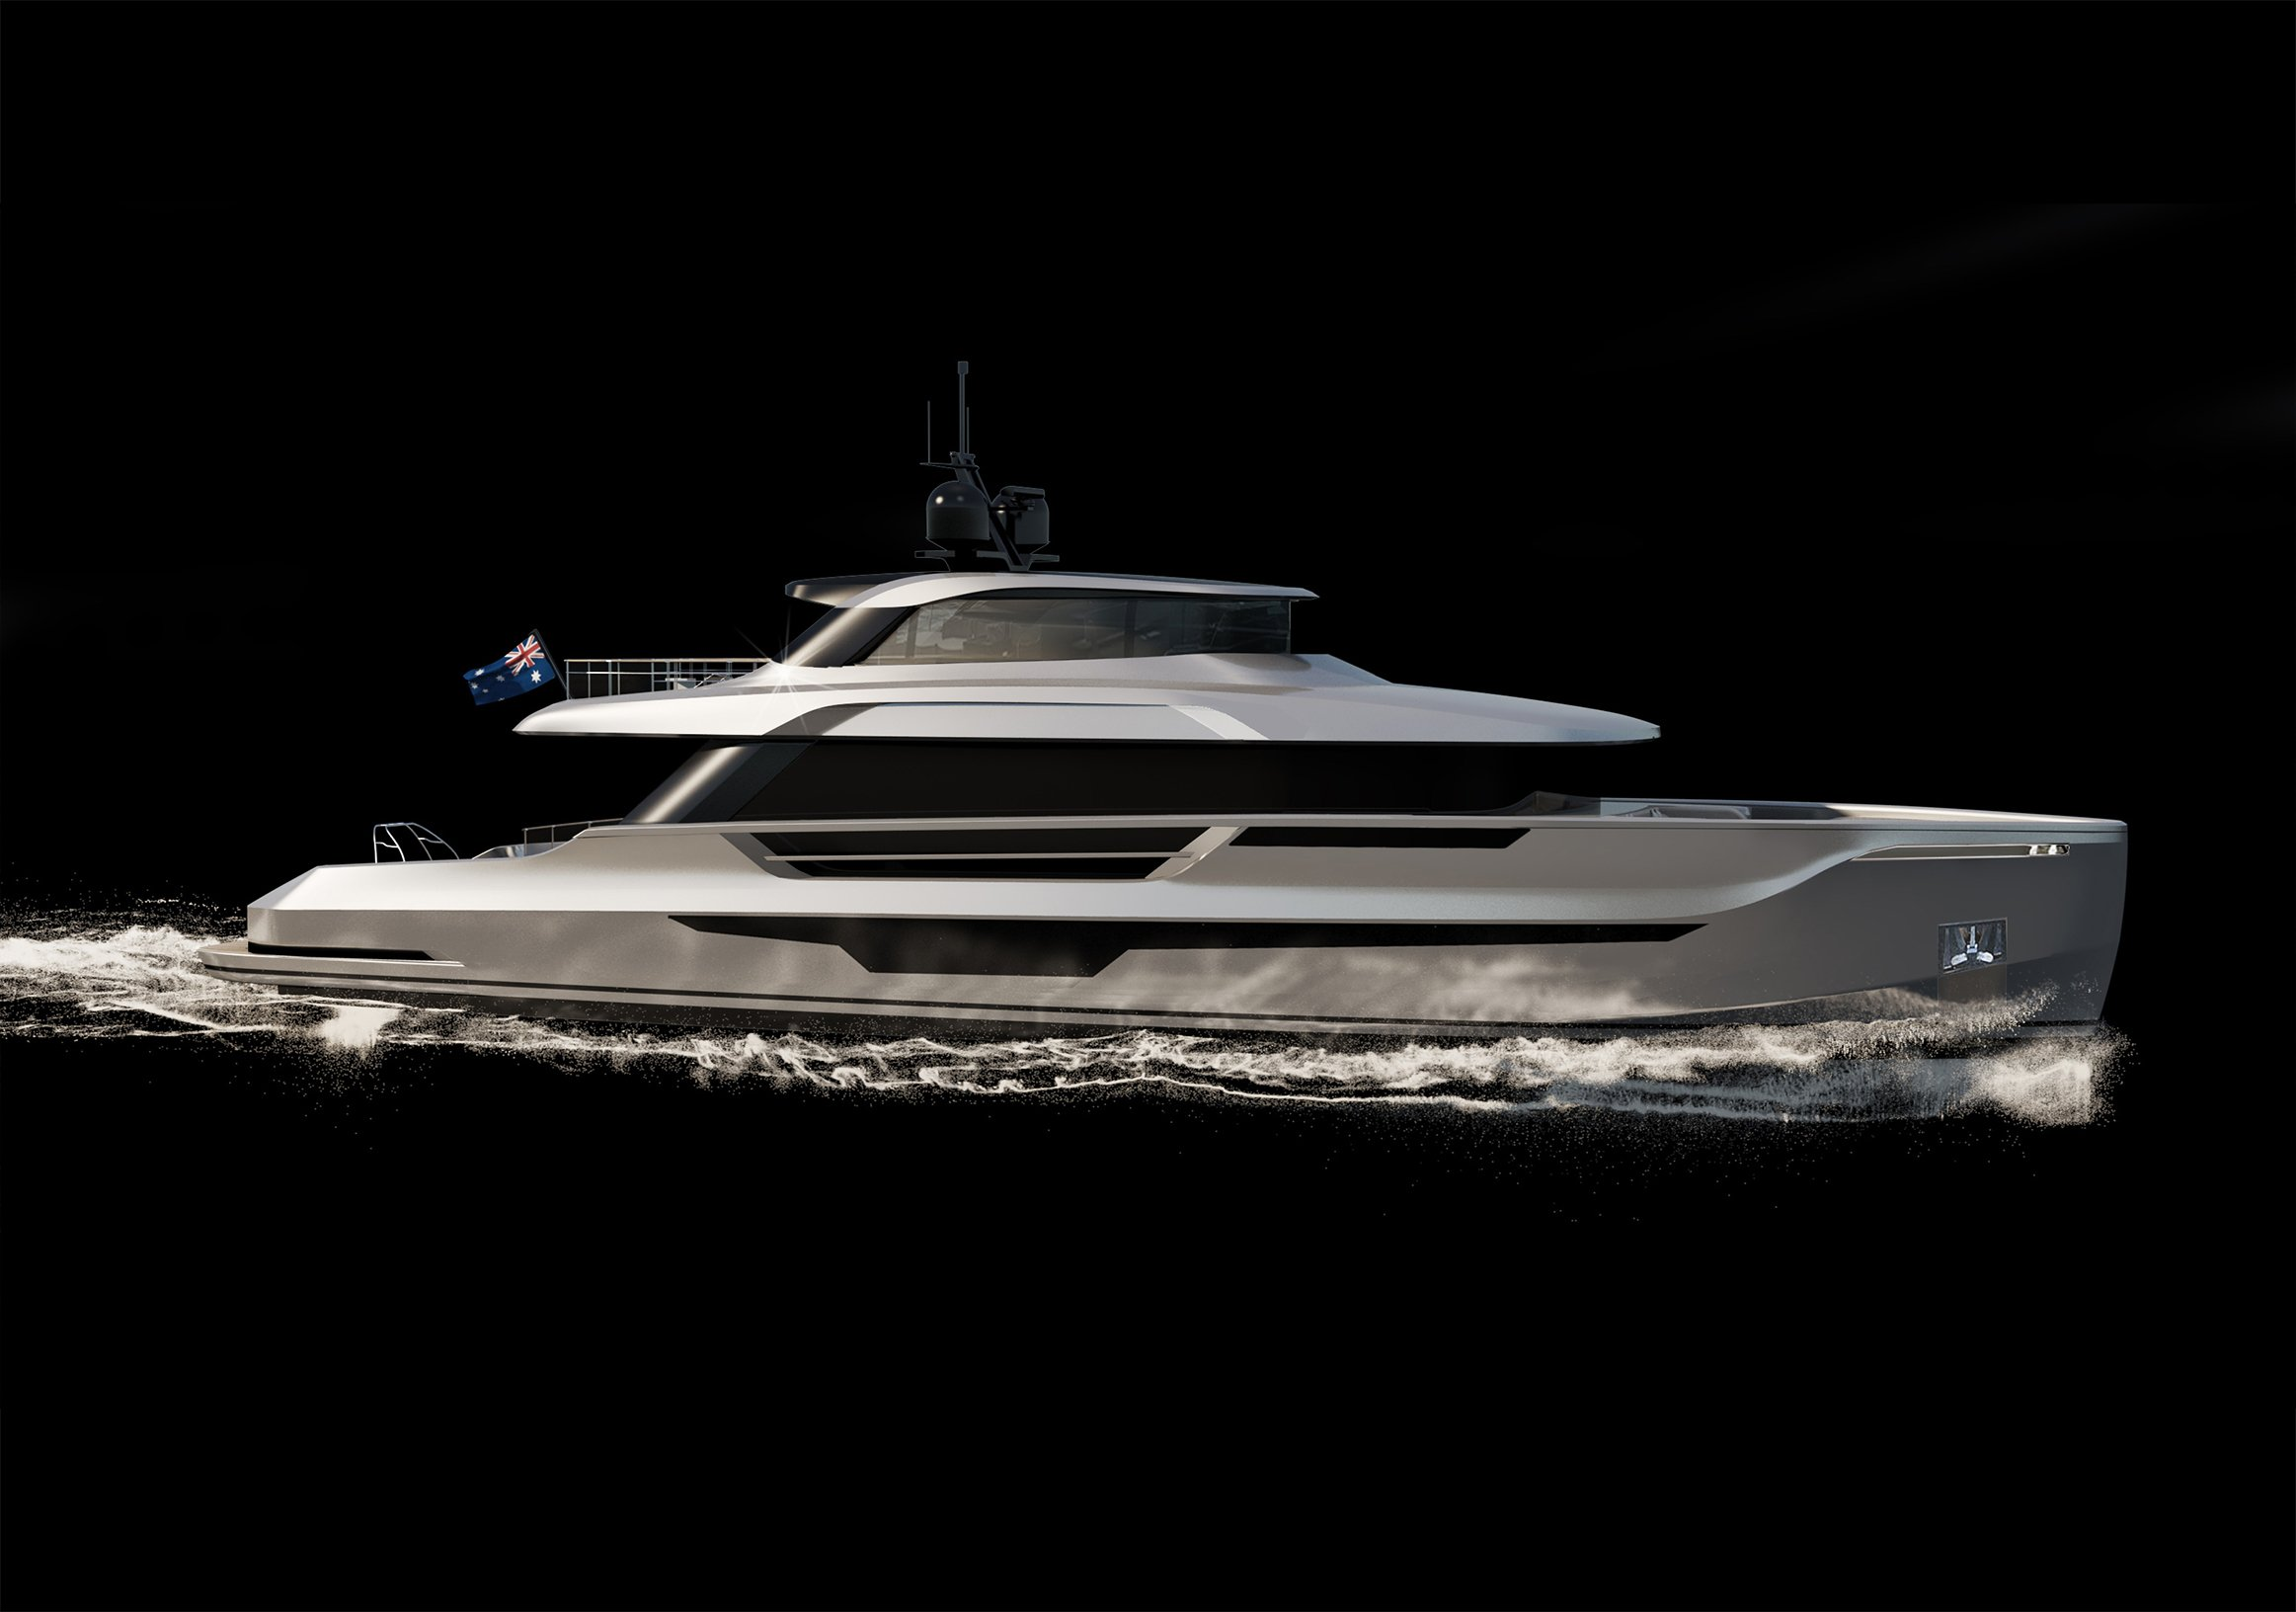 AVALON 26 Exterior Design For Heysea yachts motor yachts